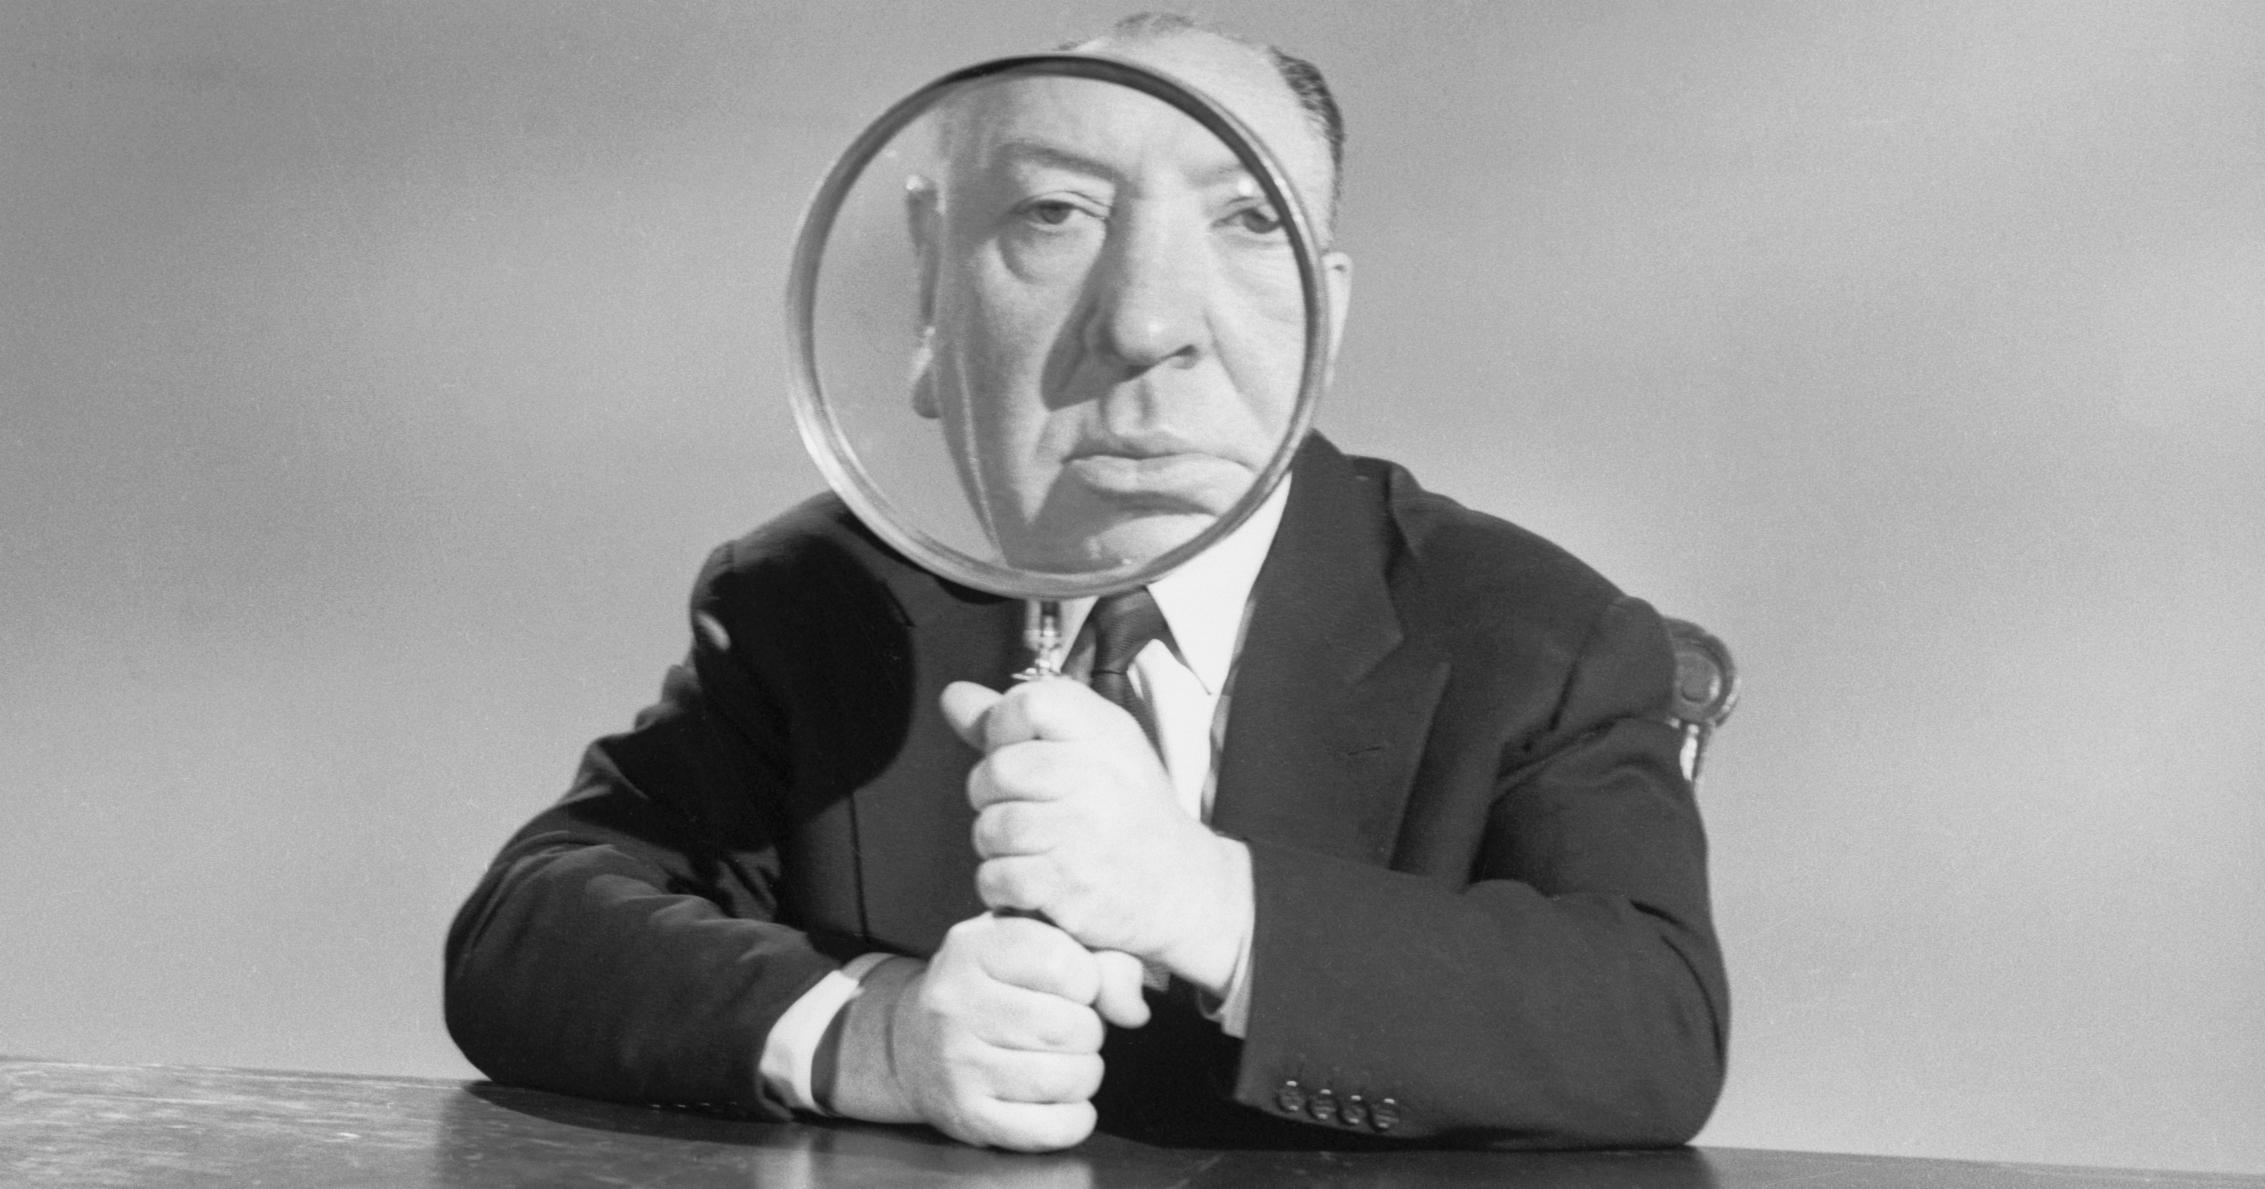 Wall Decor Black /& White Portrait Master of Suspense Must Have for Movie Enthusiasts Wall Art Home Alfred Hitchcock Crow Print Hitch